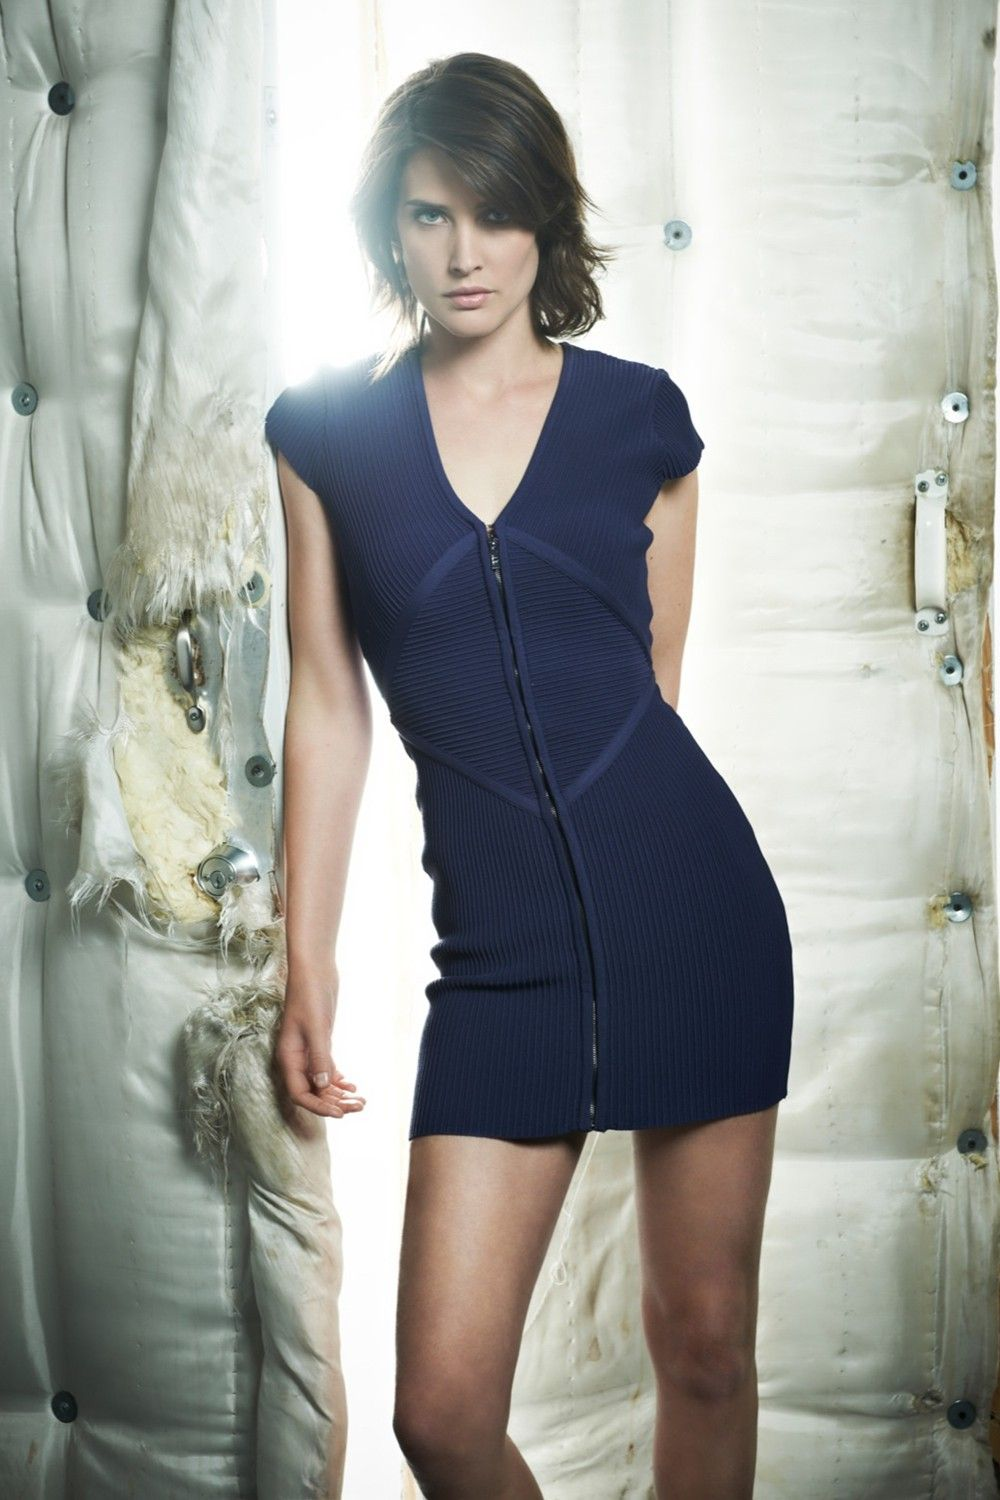 Snapchat Cobie Smulders naked (16 photo), Sexy, Leaked, Twitter, braless 2019